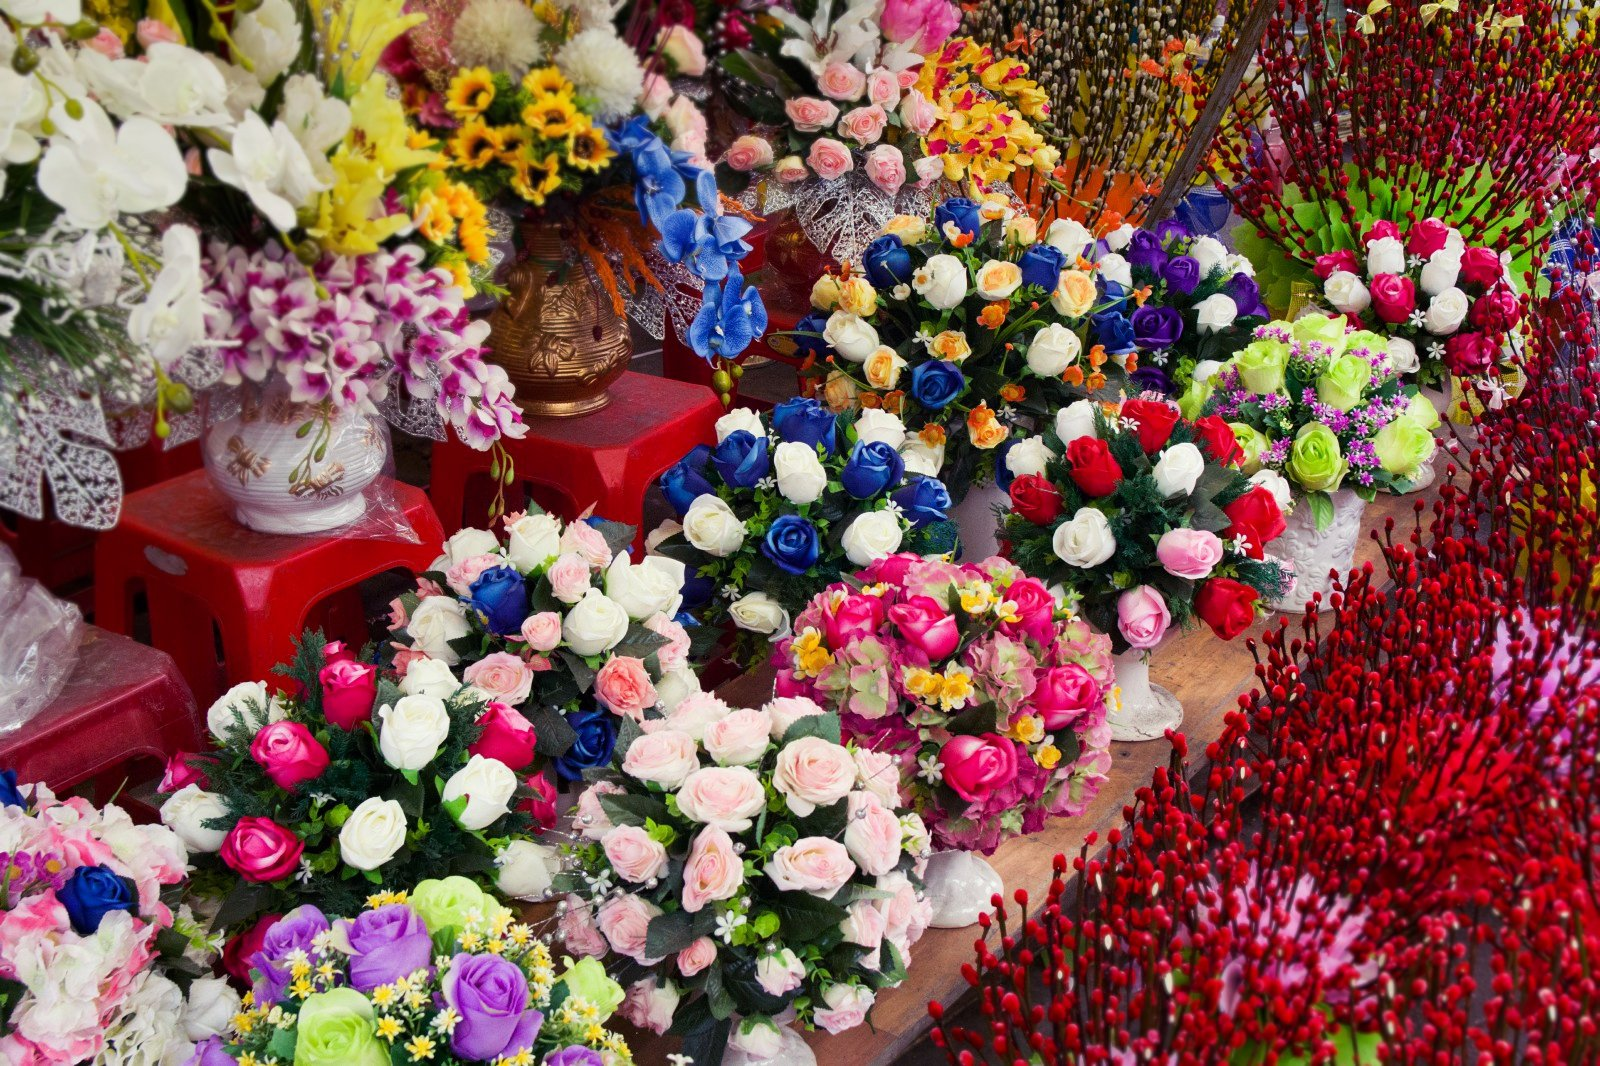 Binh Dong Floating Flower Market.The Complete Guide To Ho Thi Ky Flower Market In Saigon The